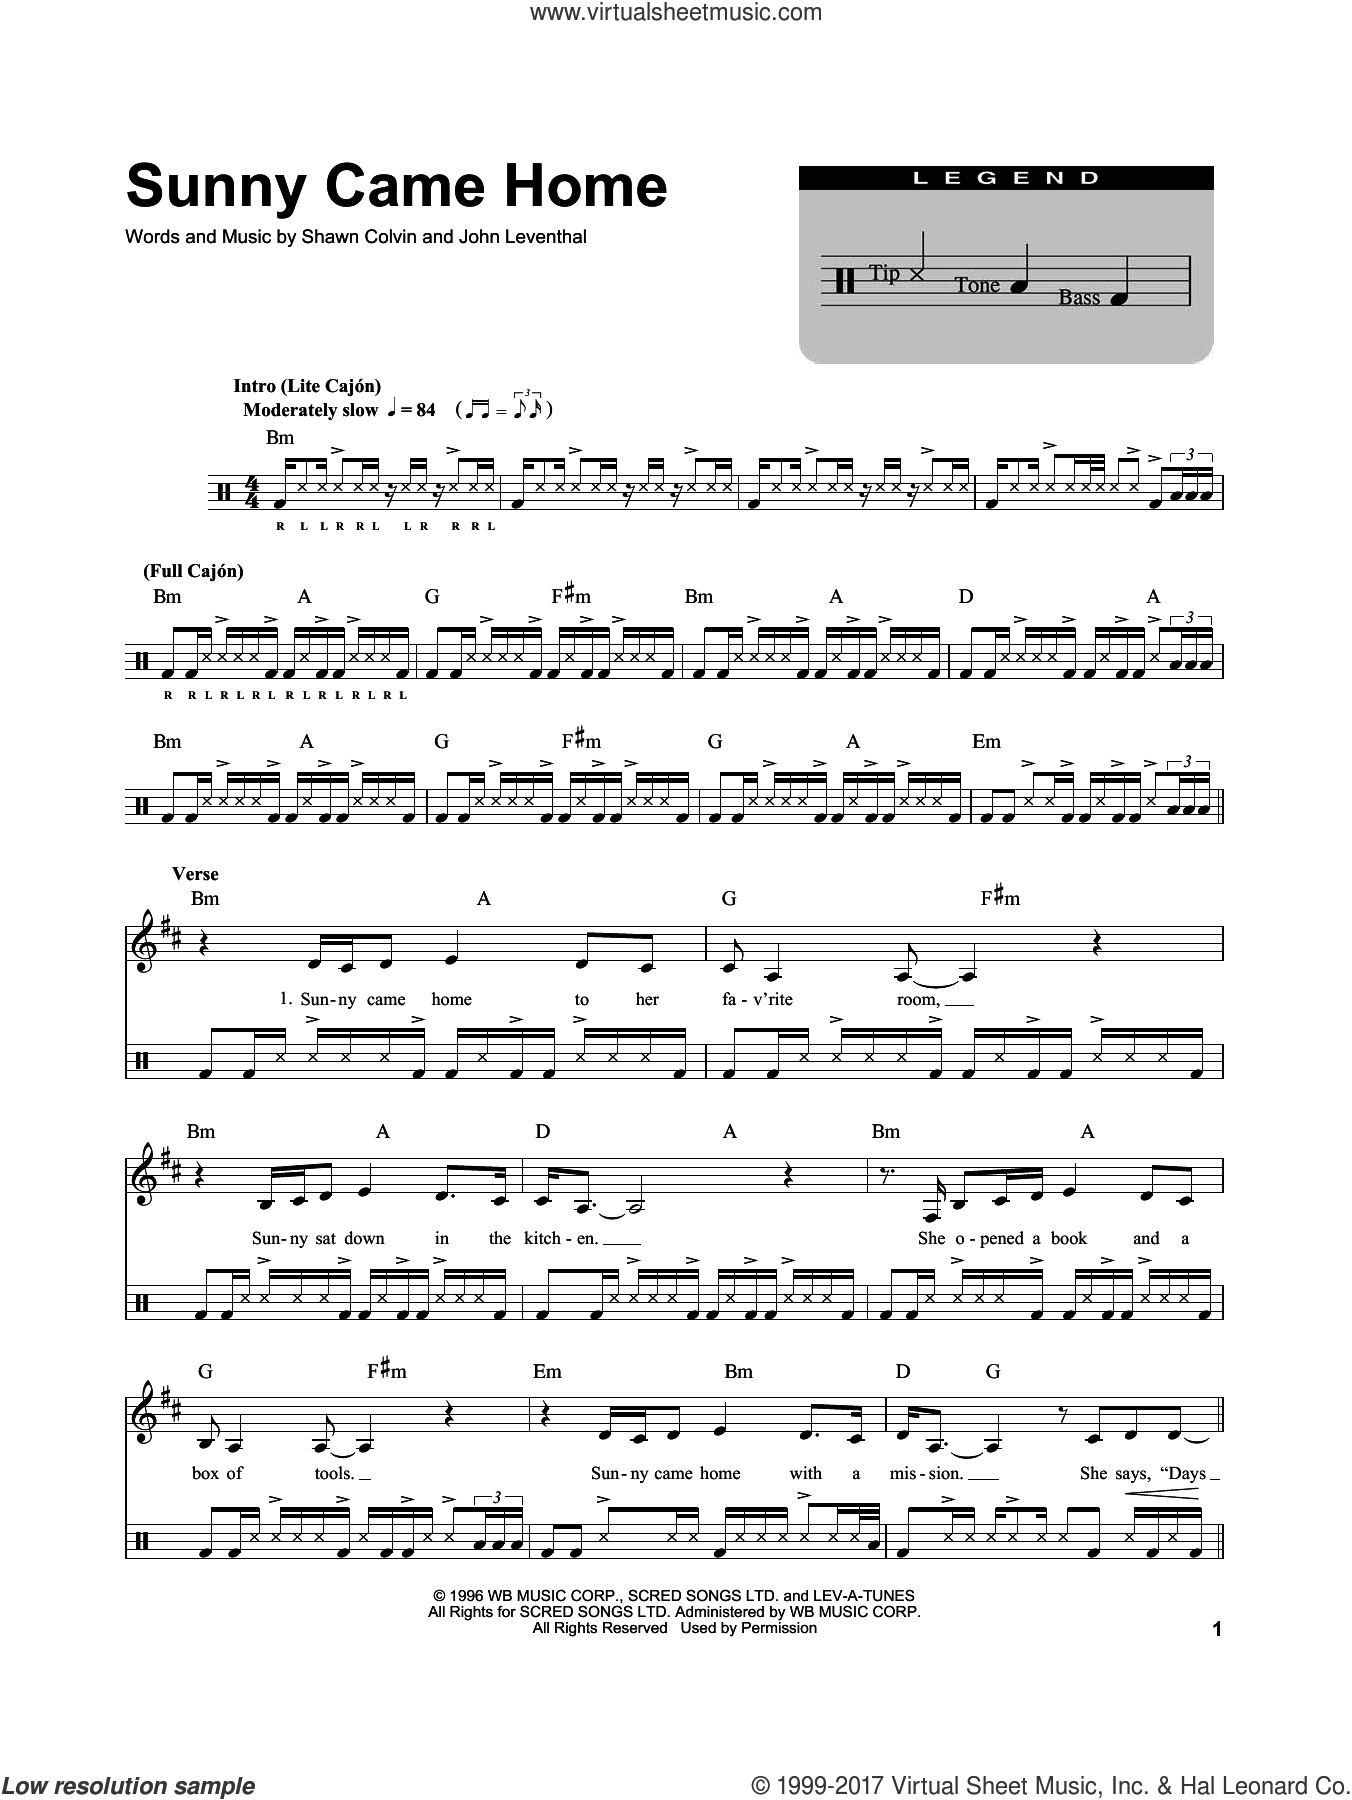 Sunny Came Home sheet music for drums by Shawn Colvin and John Leventhal, intermediate skill level